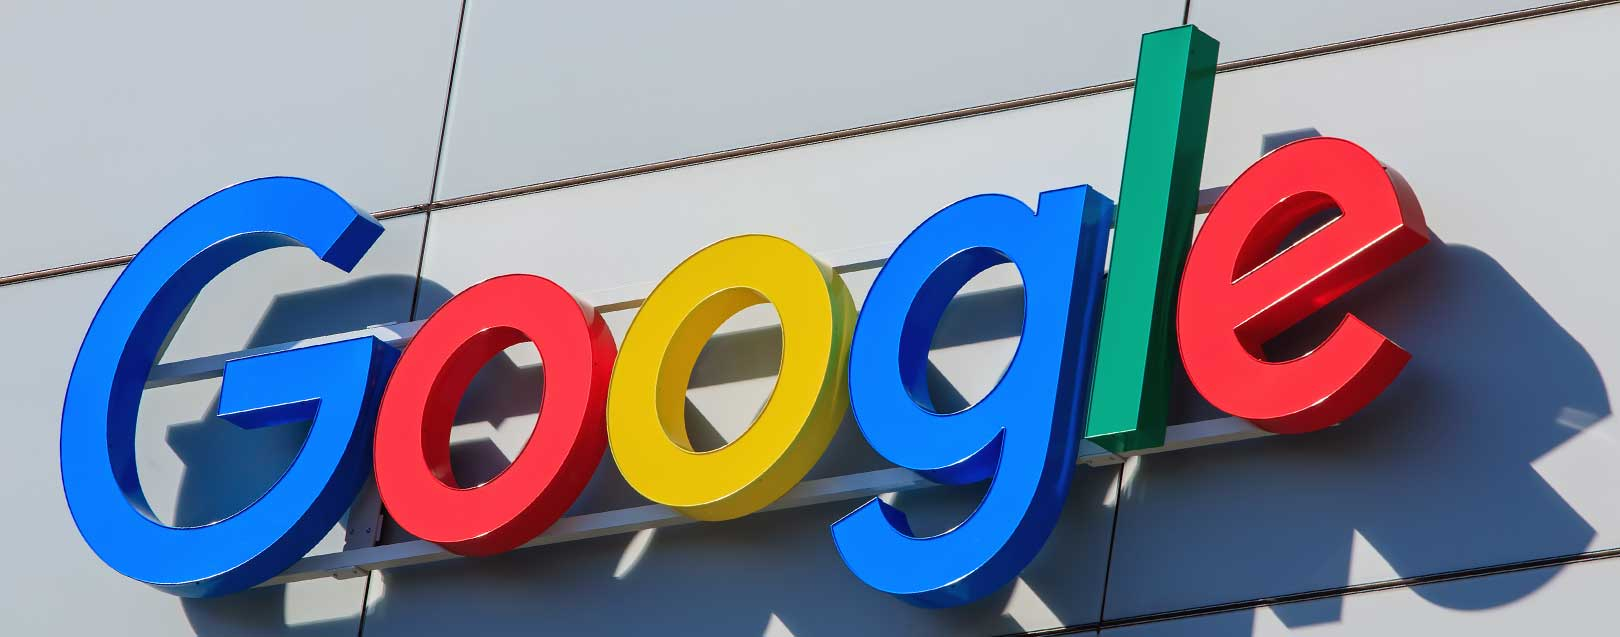 European Union slams Google with a $2.7 bn antitrust fine